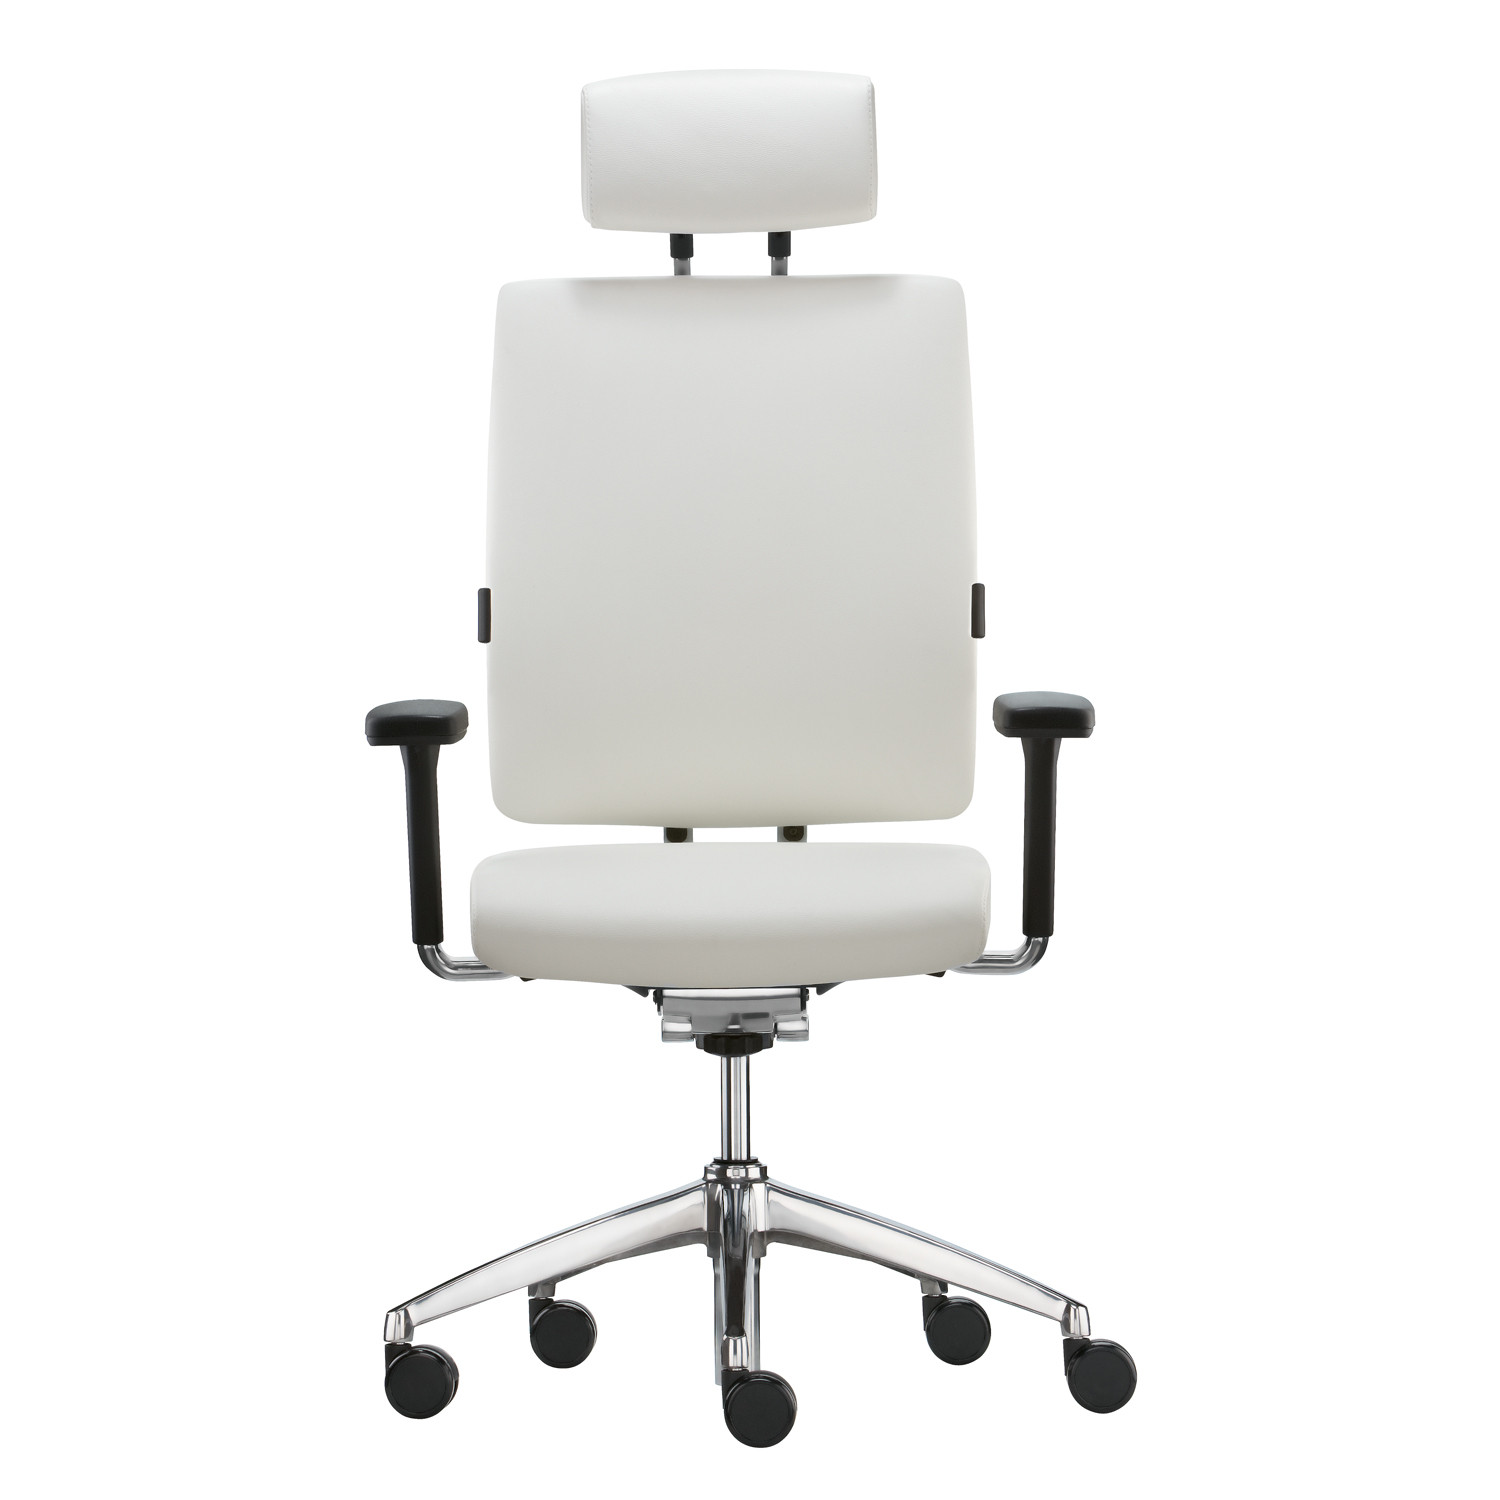 Too 2.0 Office Chair with Headrest